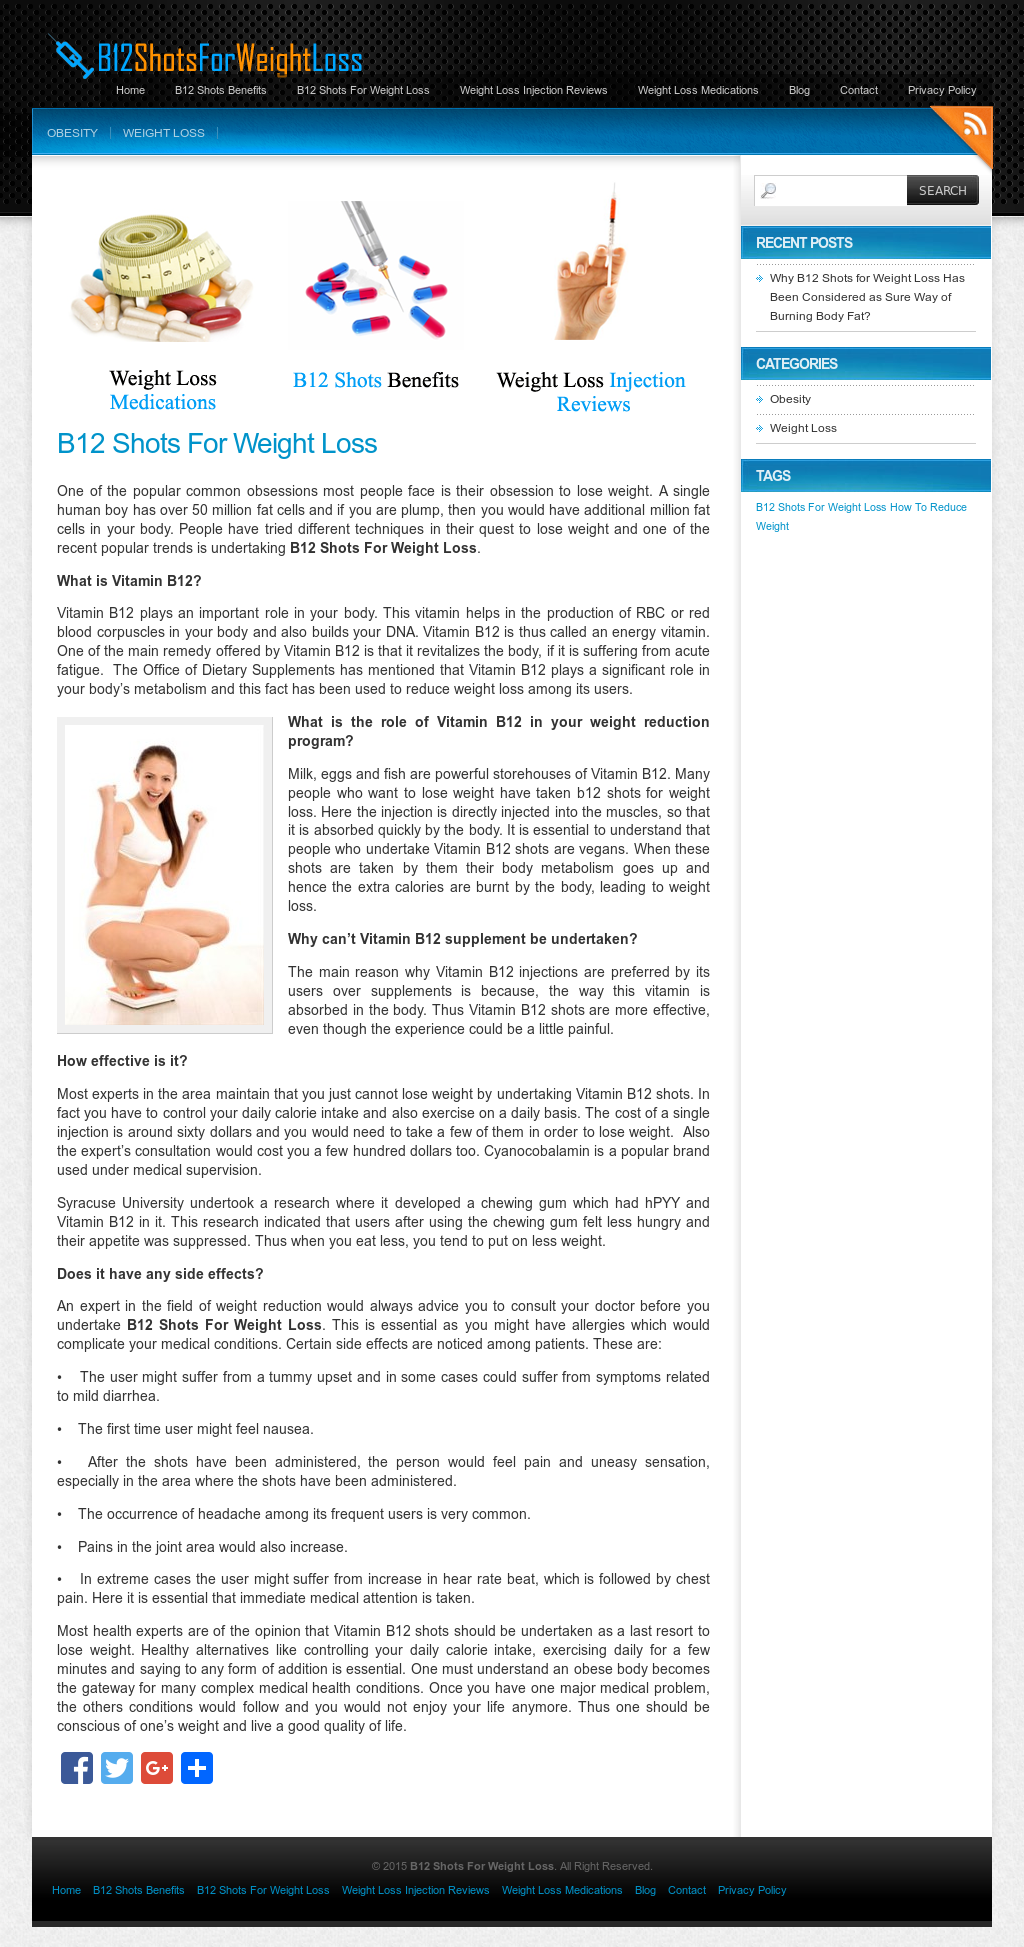 B12 Shots For Weight Loss Competitors, Revenue and Employees